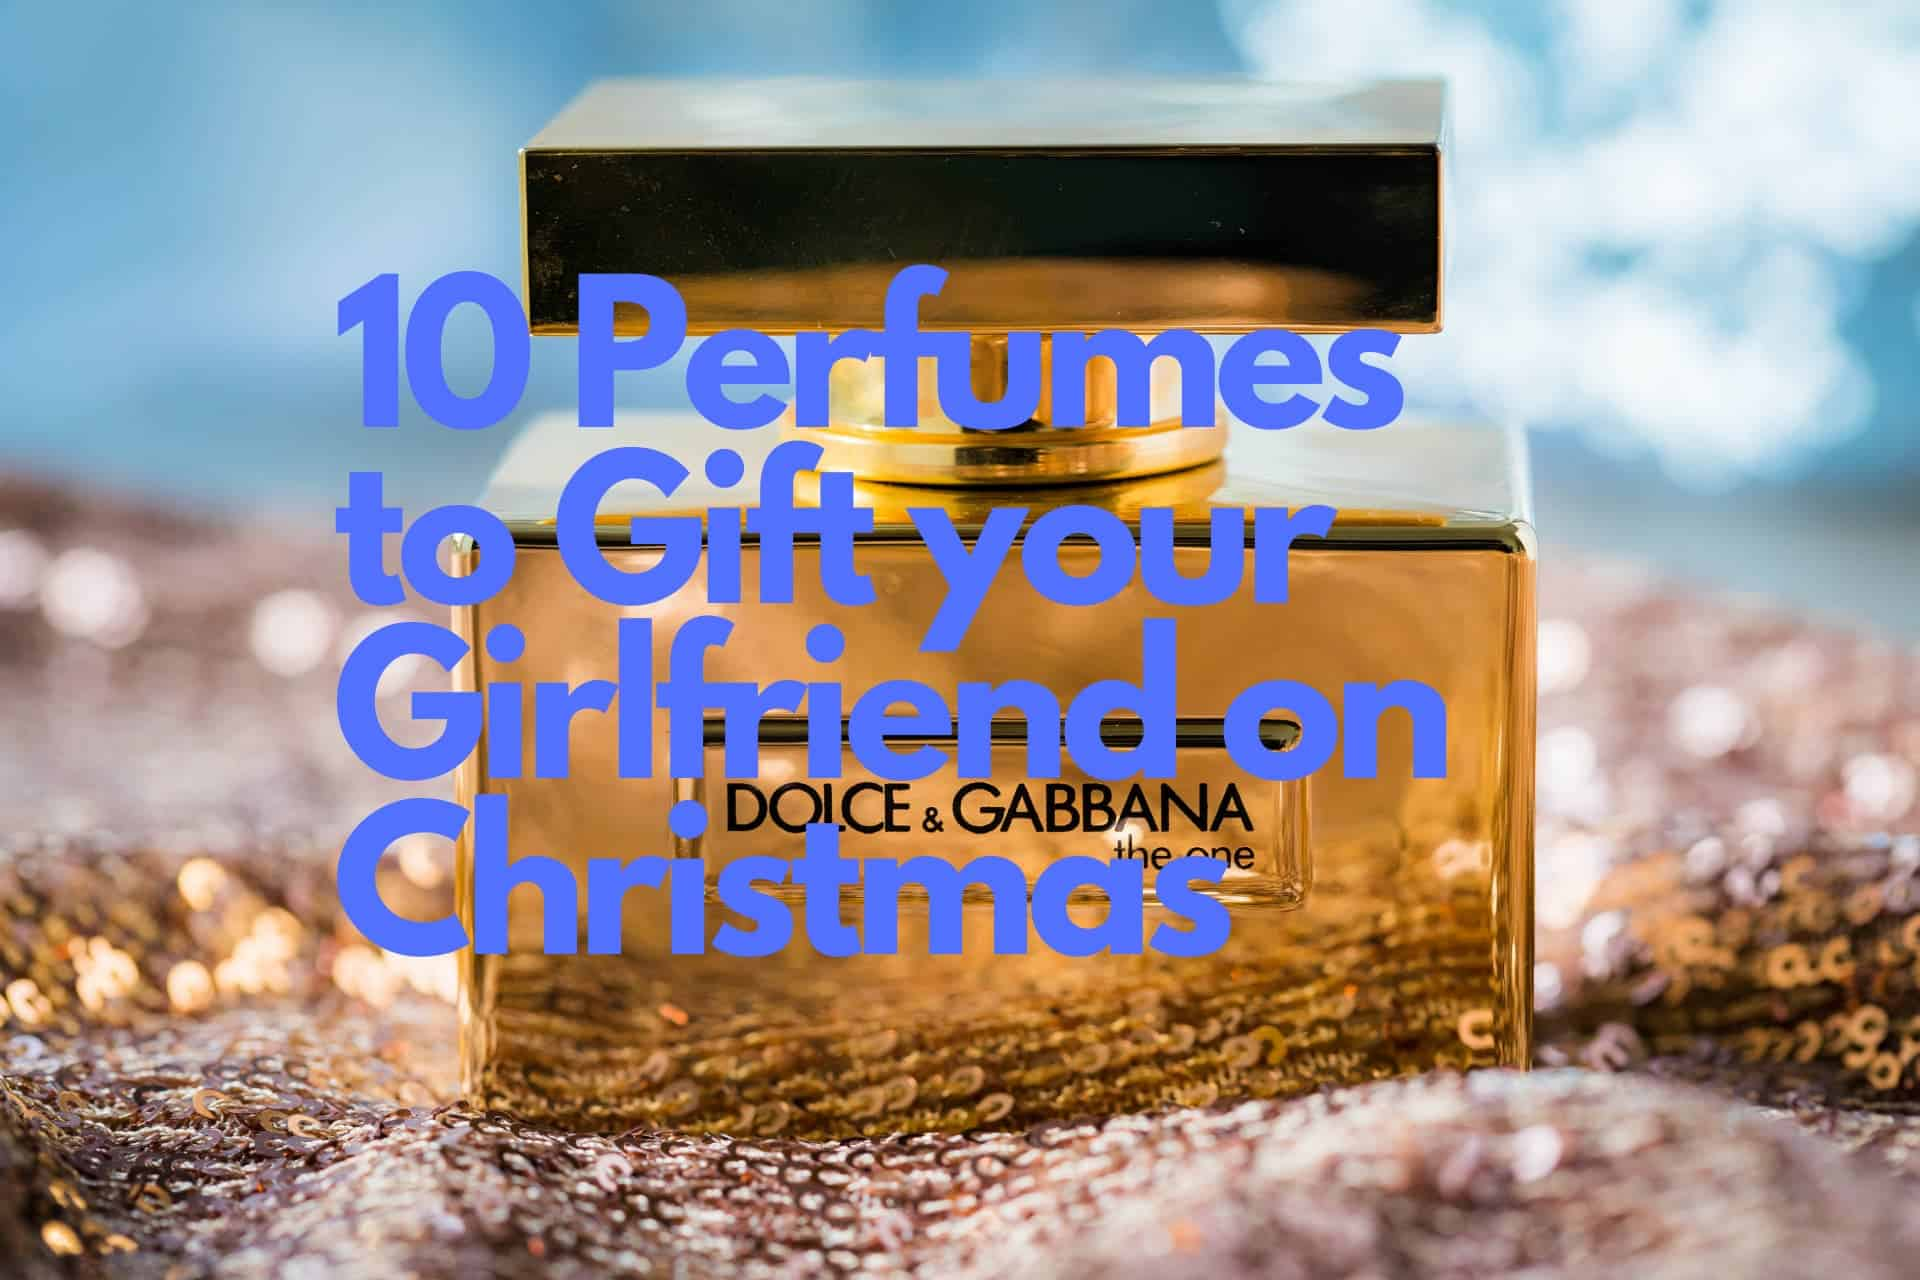 10 Perfumes to Gift your Girlfriend on Christmas